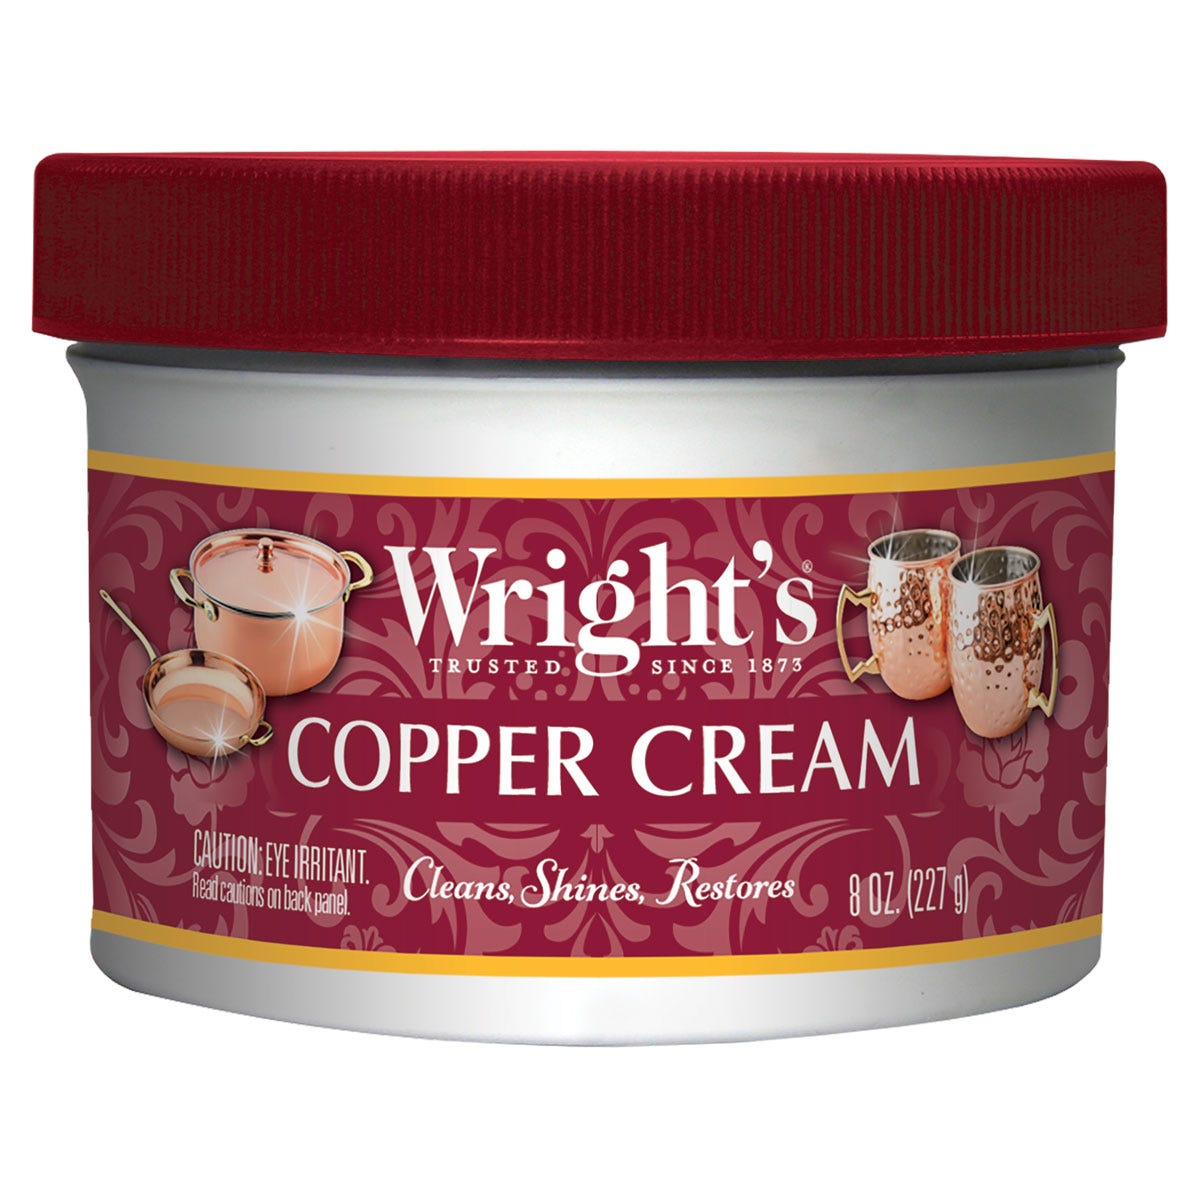 Wright's Copper Cream